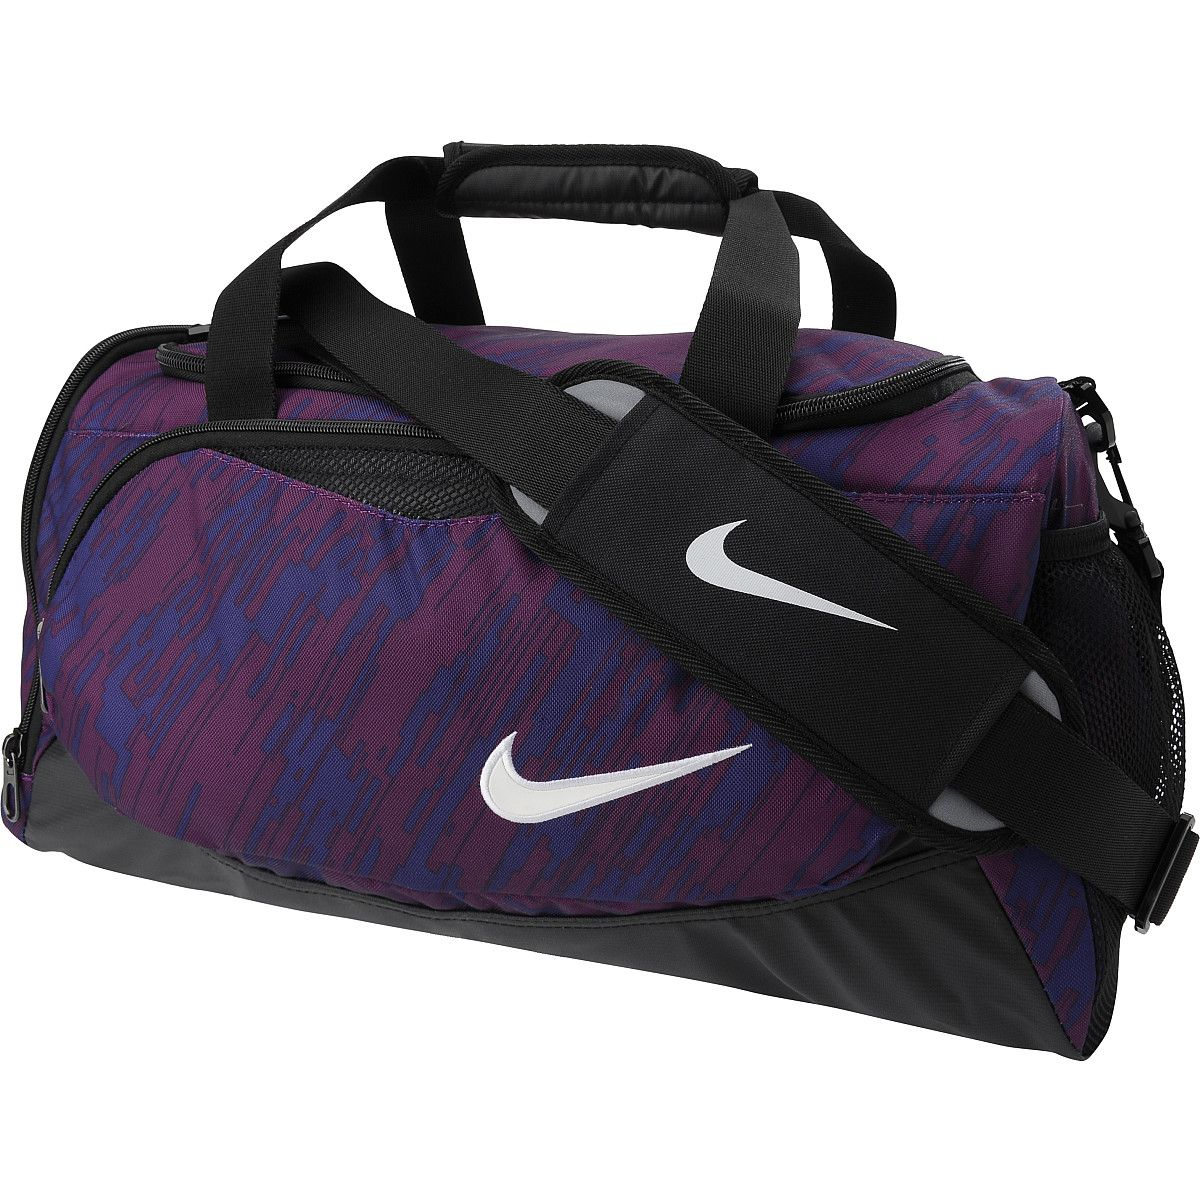 NIKE YA Team Training Duffle Bag - Small - SportsAuthority.com ... 3a036c6ad2df8